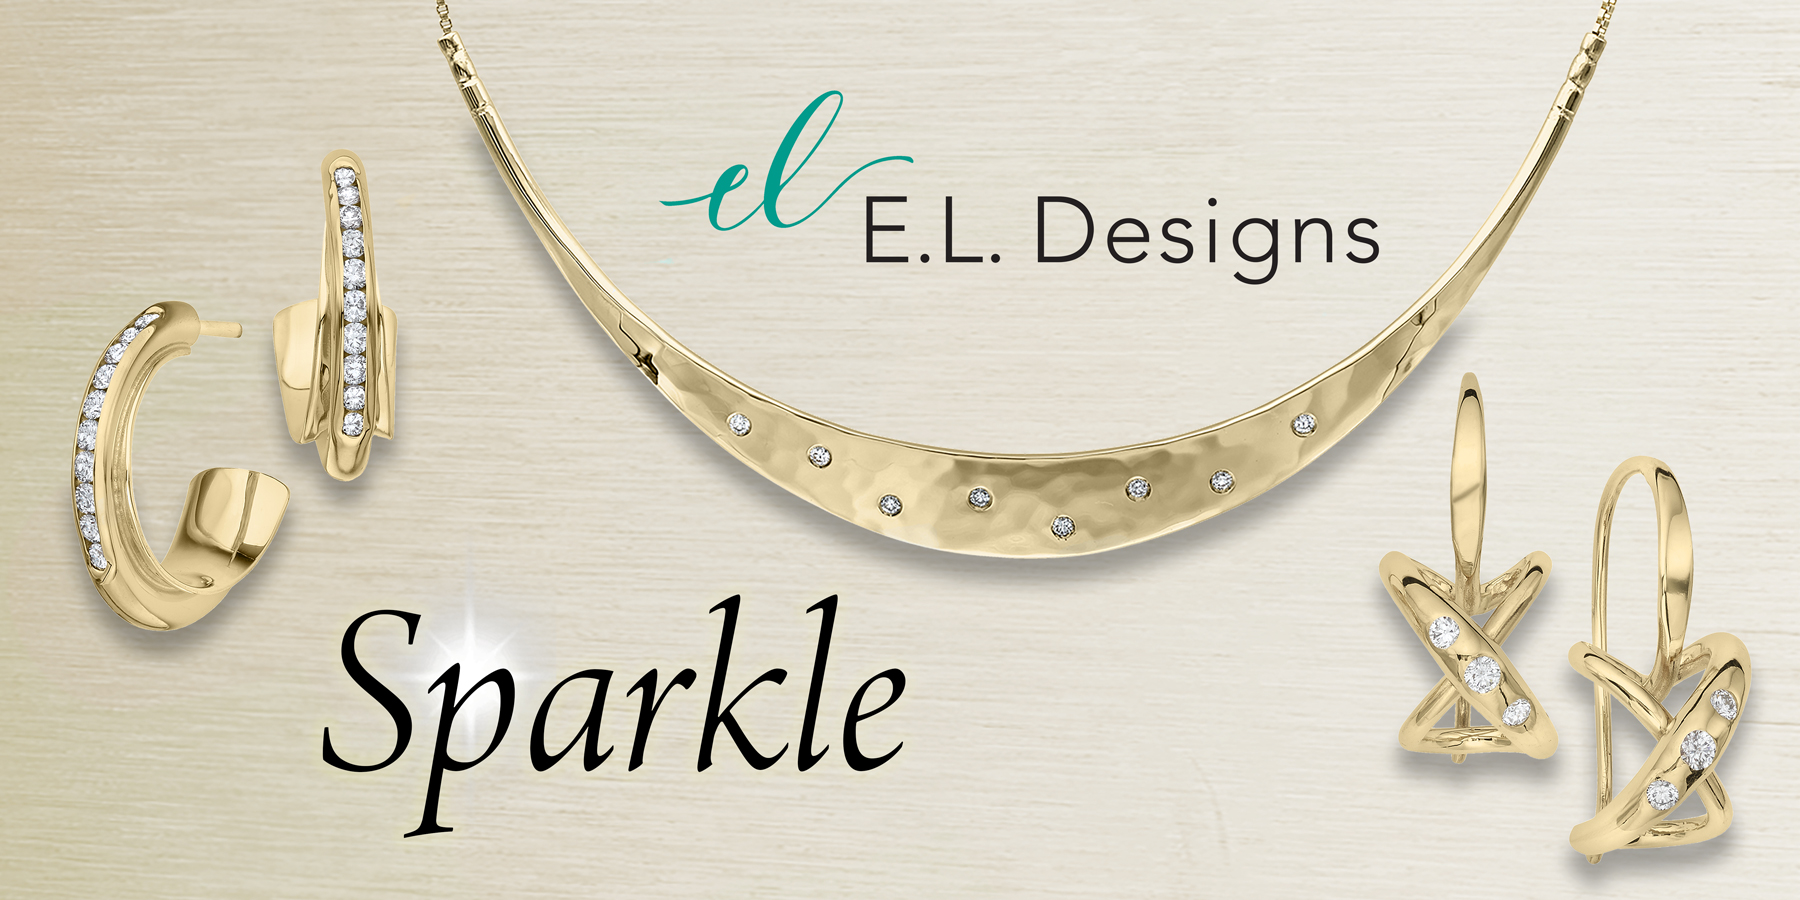 E.L. Designs by Ed Levin Studio | Hand Forged in the U.S.A